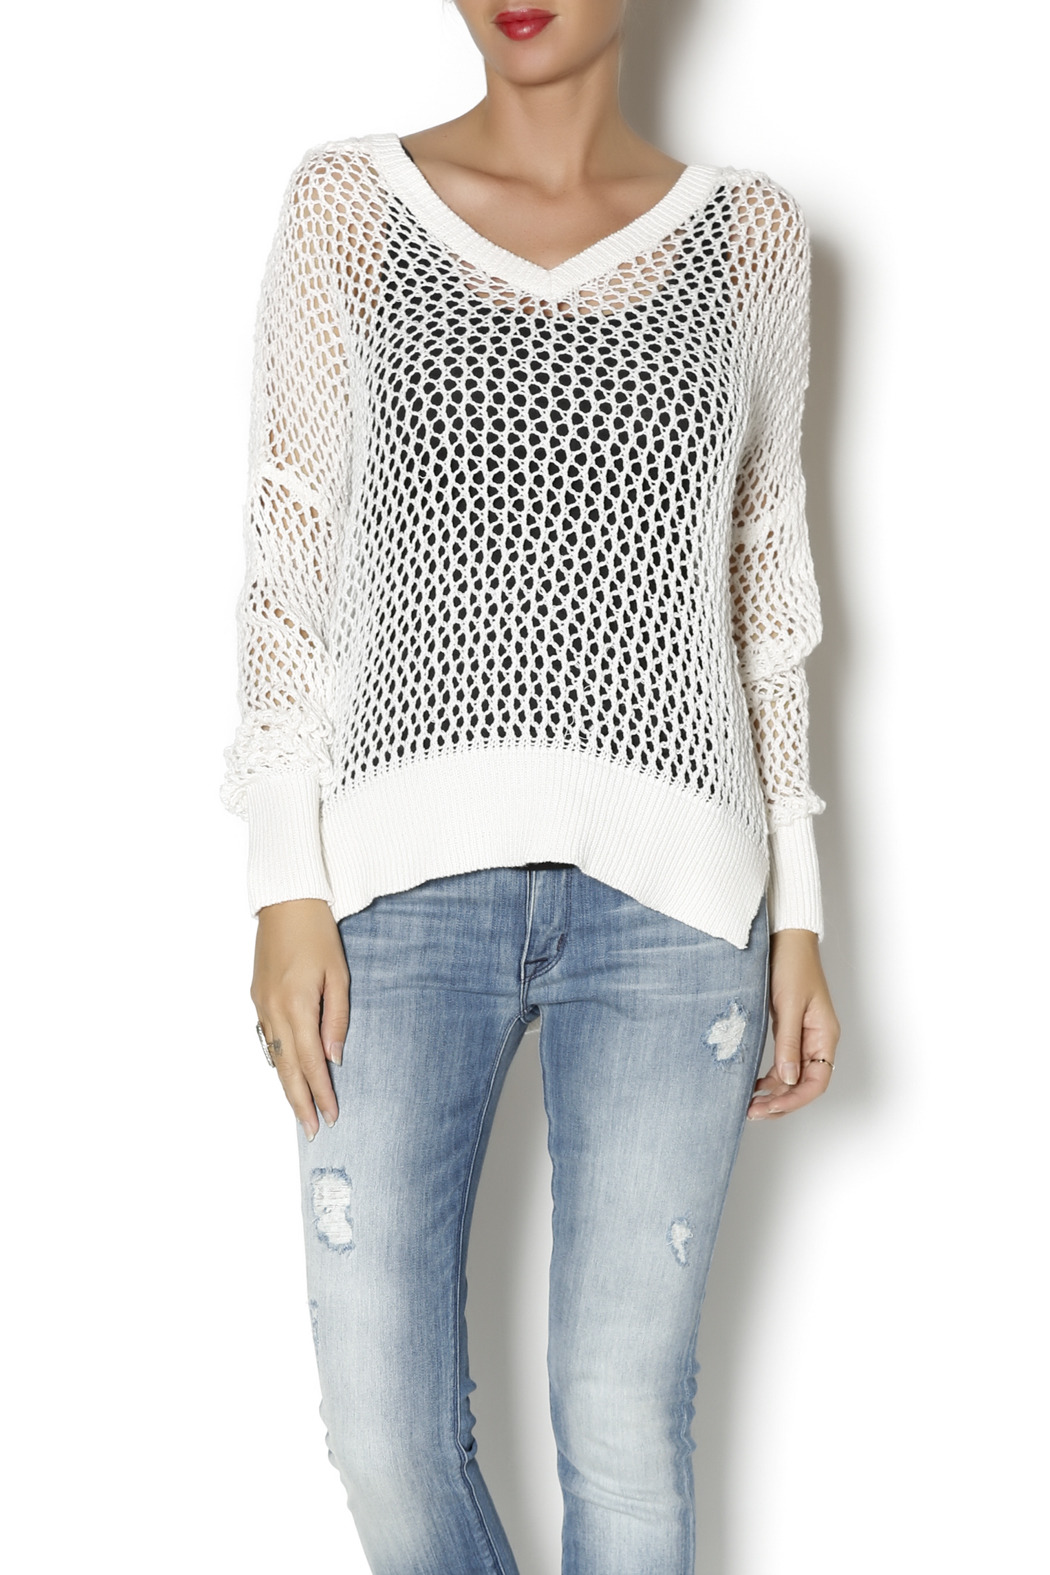 Elan Hooded Open Weave Sweater from Syracuse by Steph Boutique ...